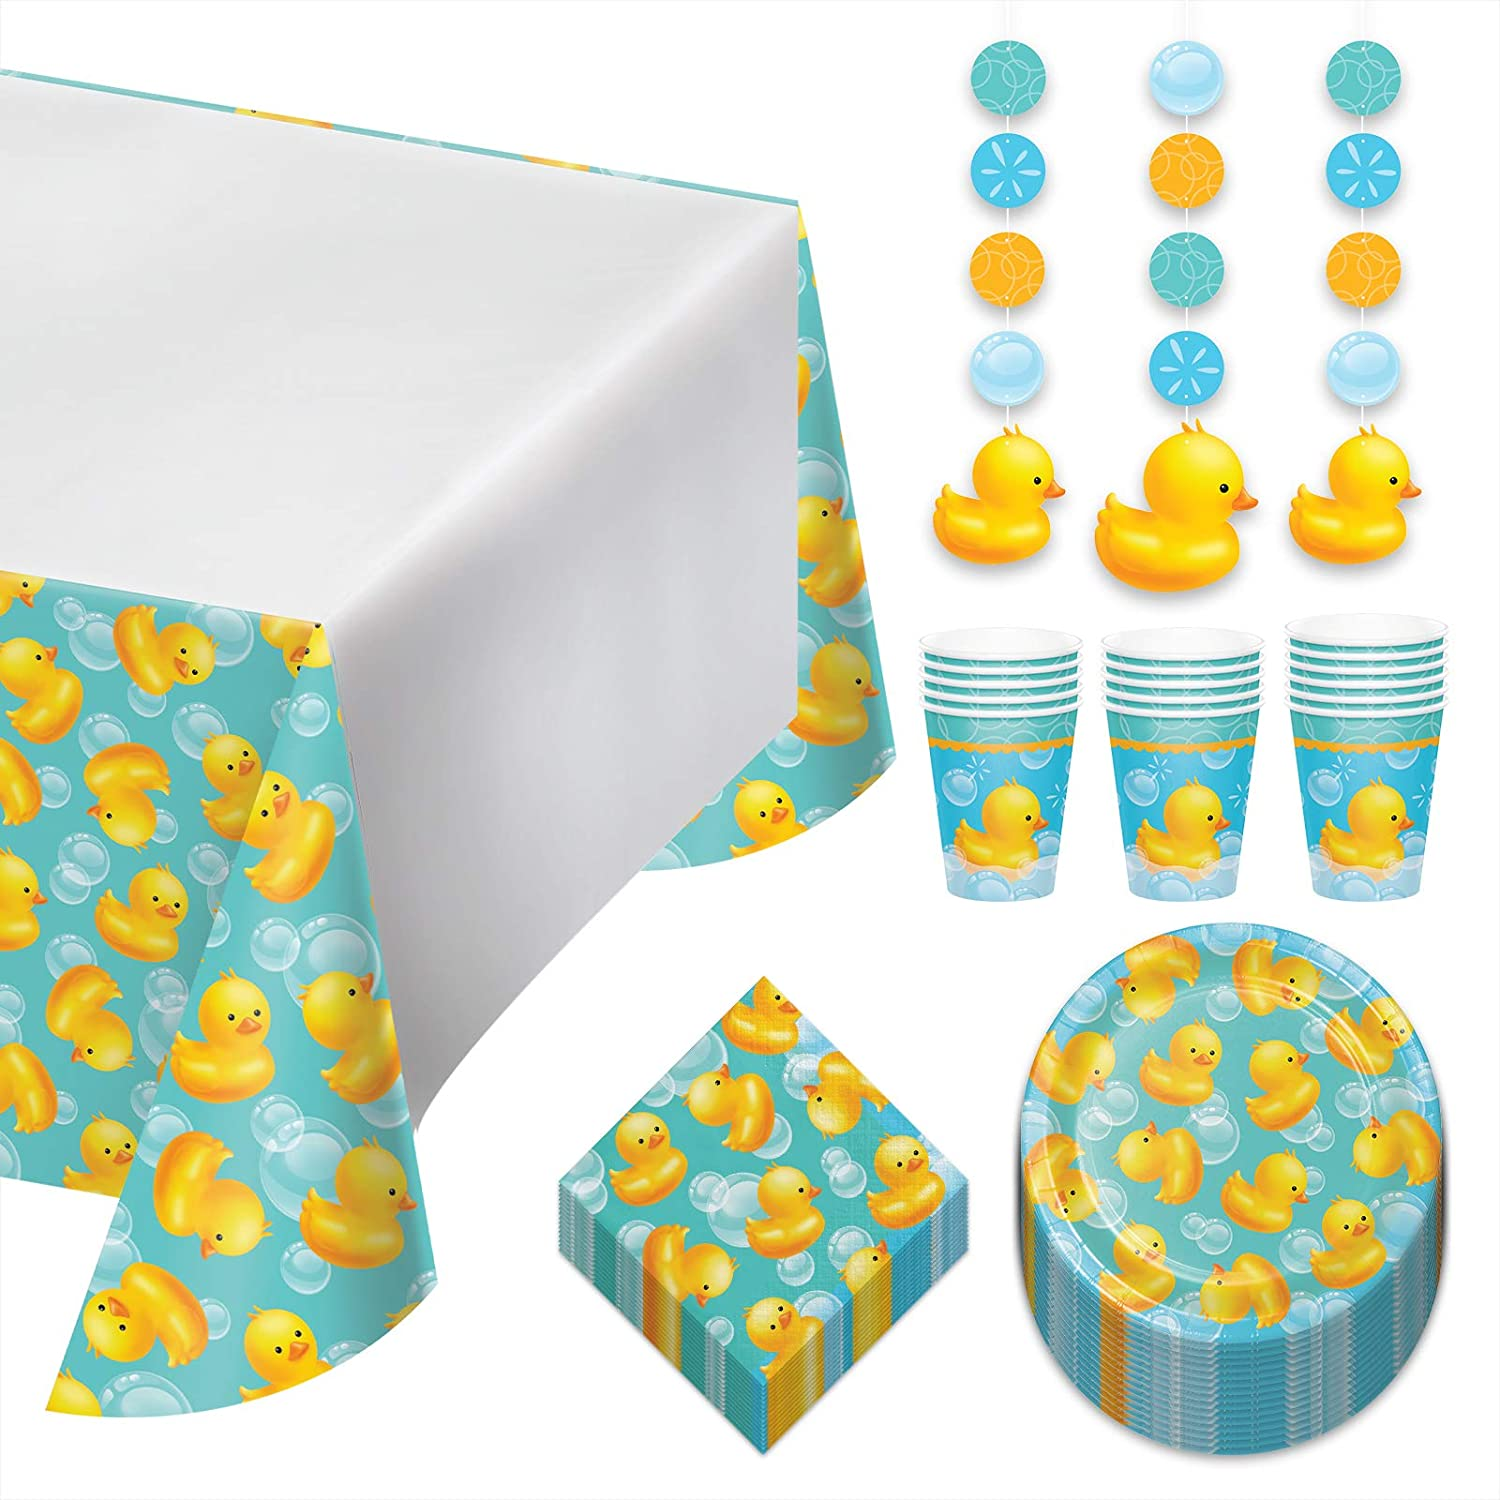 Rubber Duck Dessert Party Pack - Bubble Bath Paper Plates, Napkins, Cups, Table Cover, and Hanging Cutouts Set (Serves 16)